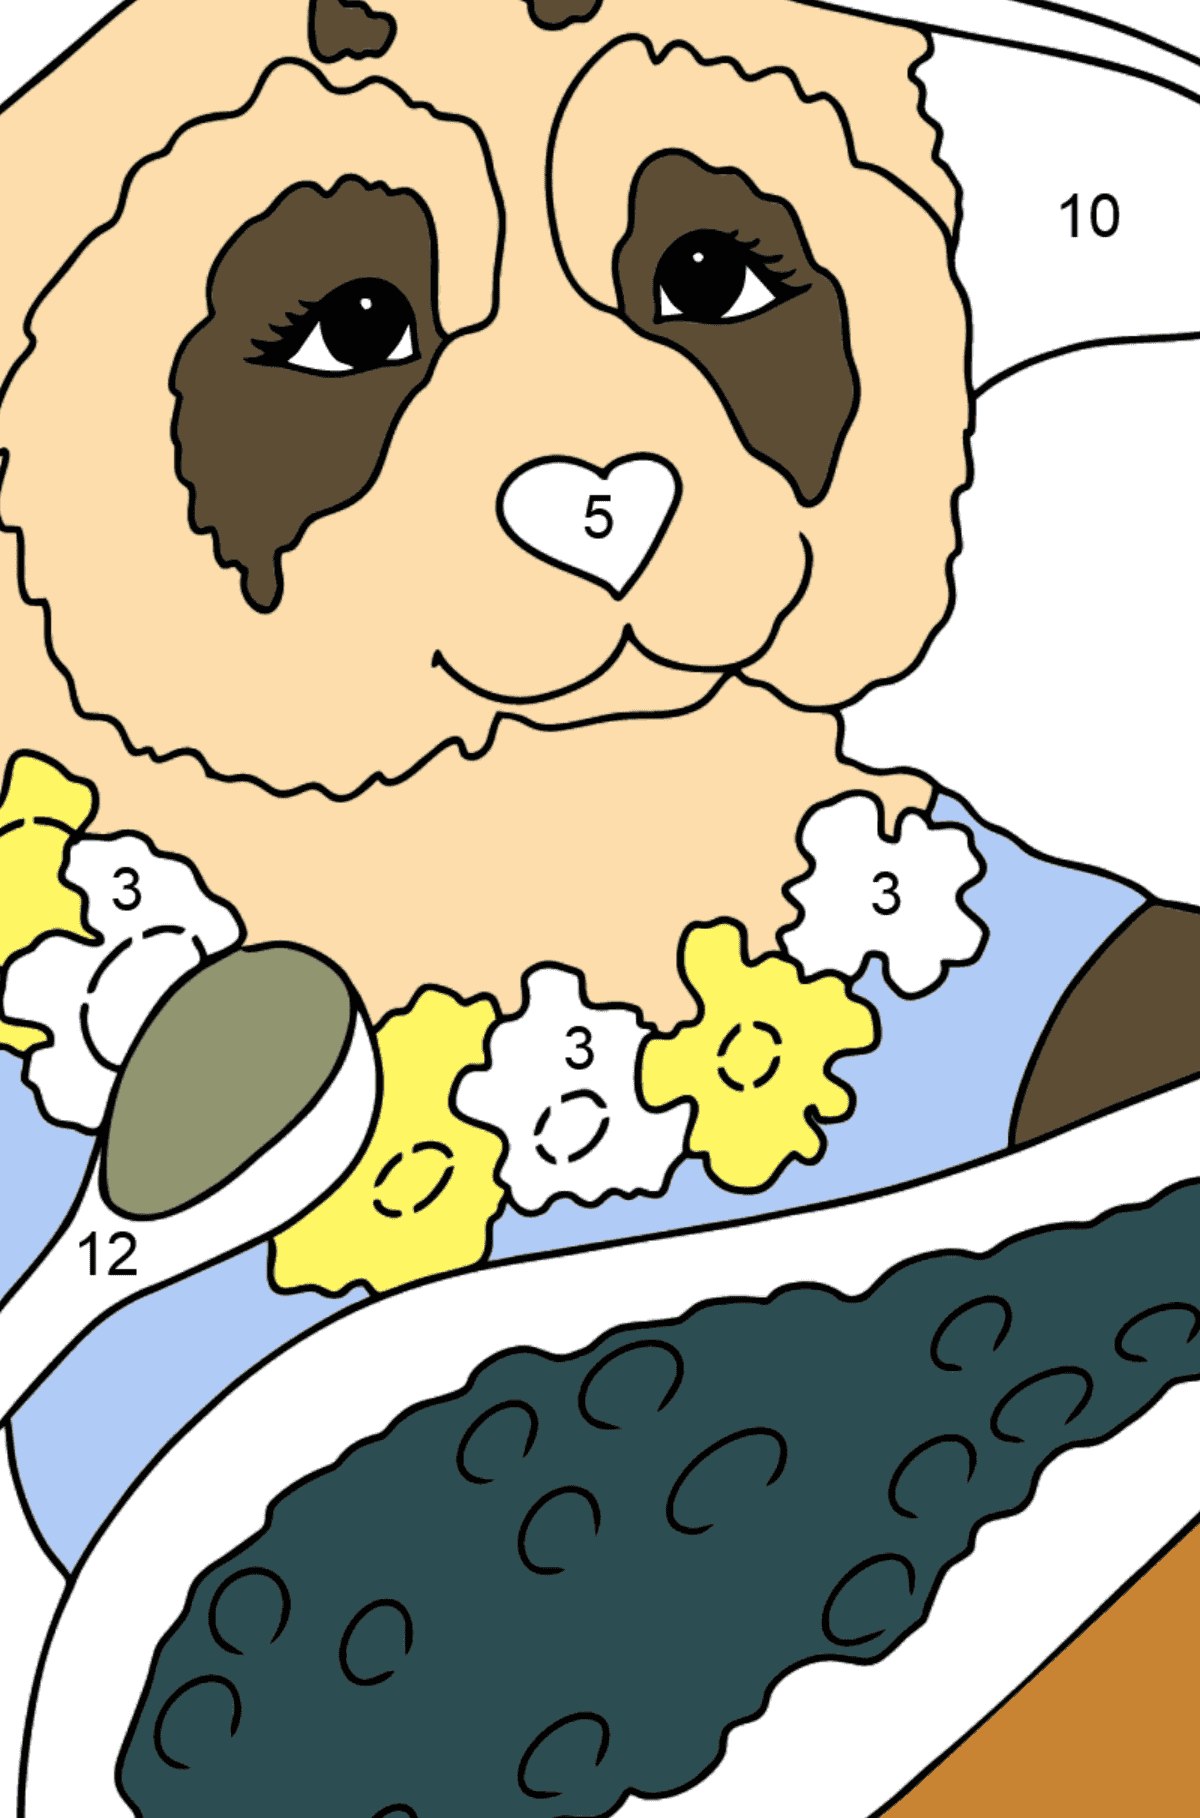 Coloring Page - A Panda is Eating - Coloring by Numbers for Kids